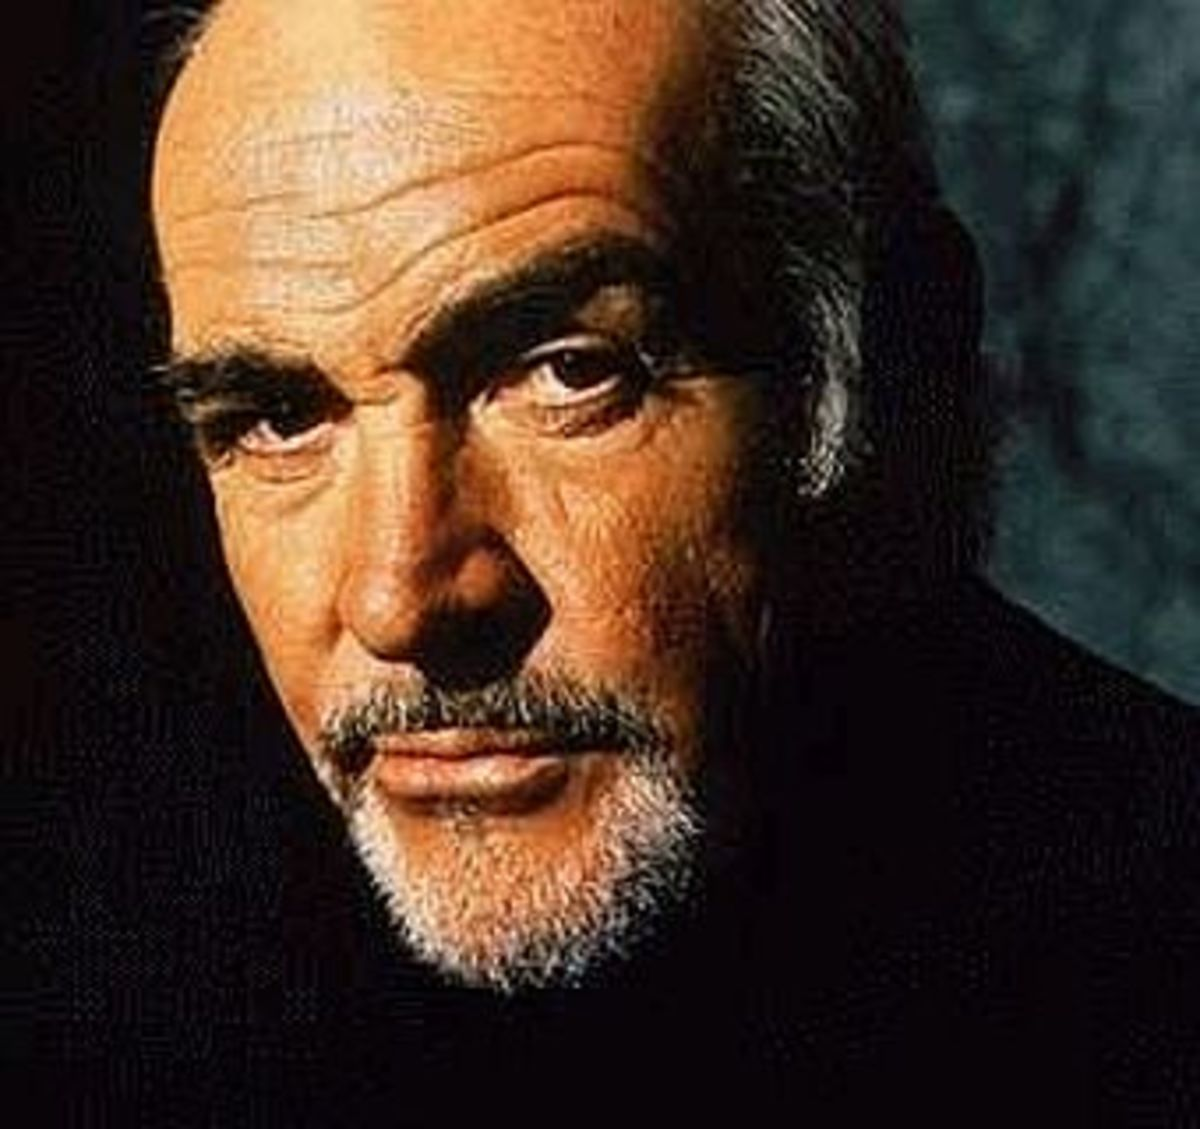 Sean Connery bald